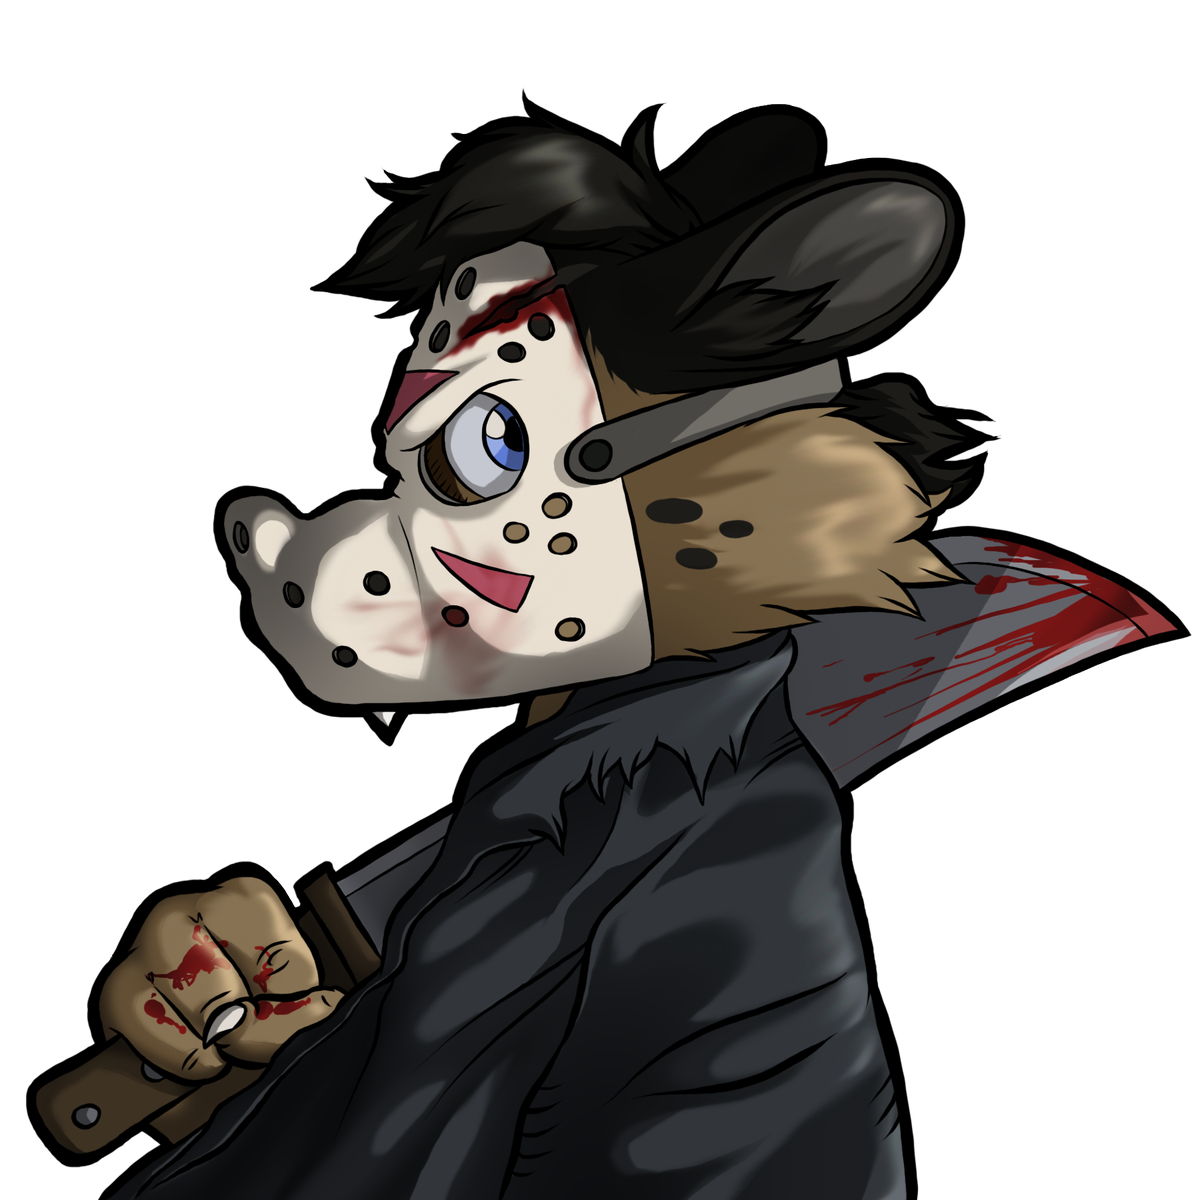 1200x1200 Laphin On Twitter Laphin As Jason Voorhees. To Be Added To My